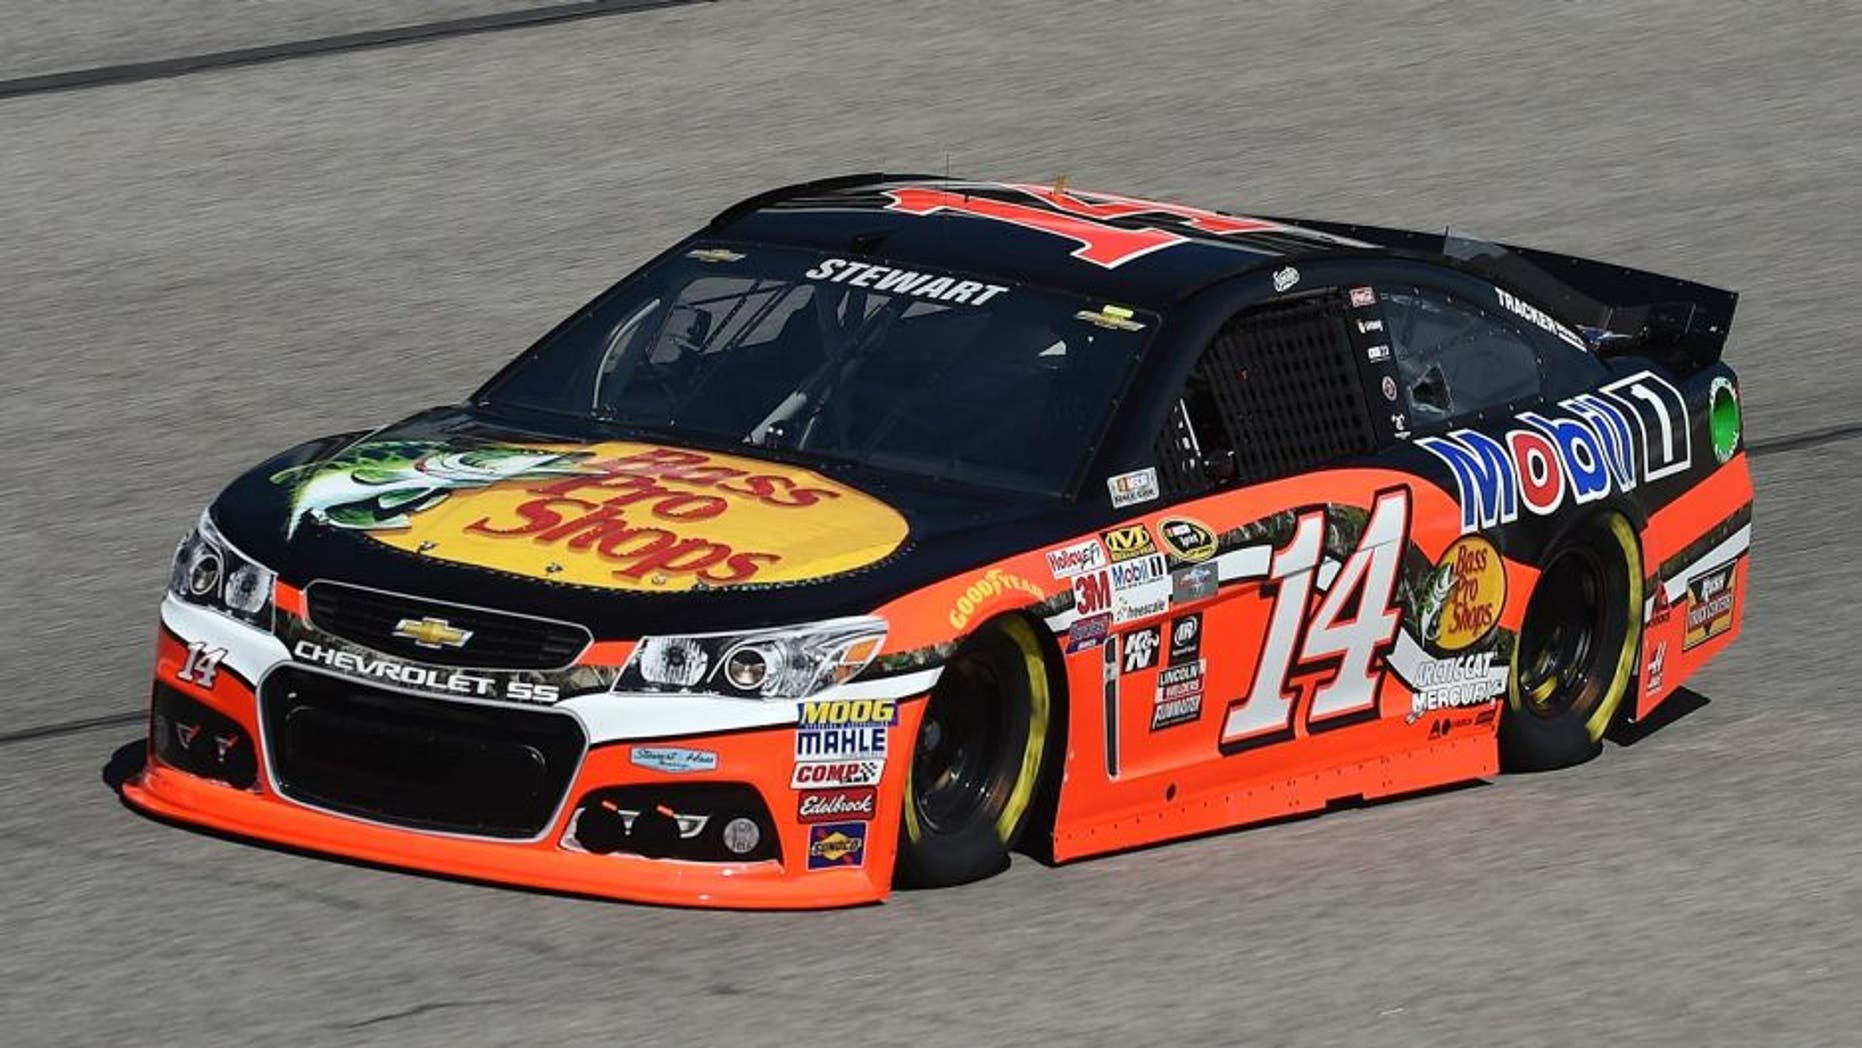 FORT WORTH, TX - NOVEMBER 06: Tony Stewart, driver of the #14 Bass Pro Shops/Mobil 1 Chevrolet, practices for the NASCAR Sprint Cup Series AAA Texas 500 at Texas Motor Speedway on November 6, 2015 in Fort Worth, Texas. (Photo by Rainier Ehrhardt/NASCAR via Getty Images)